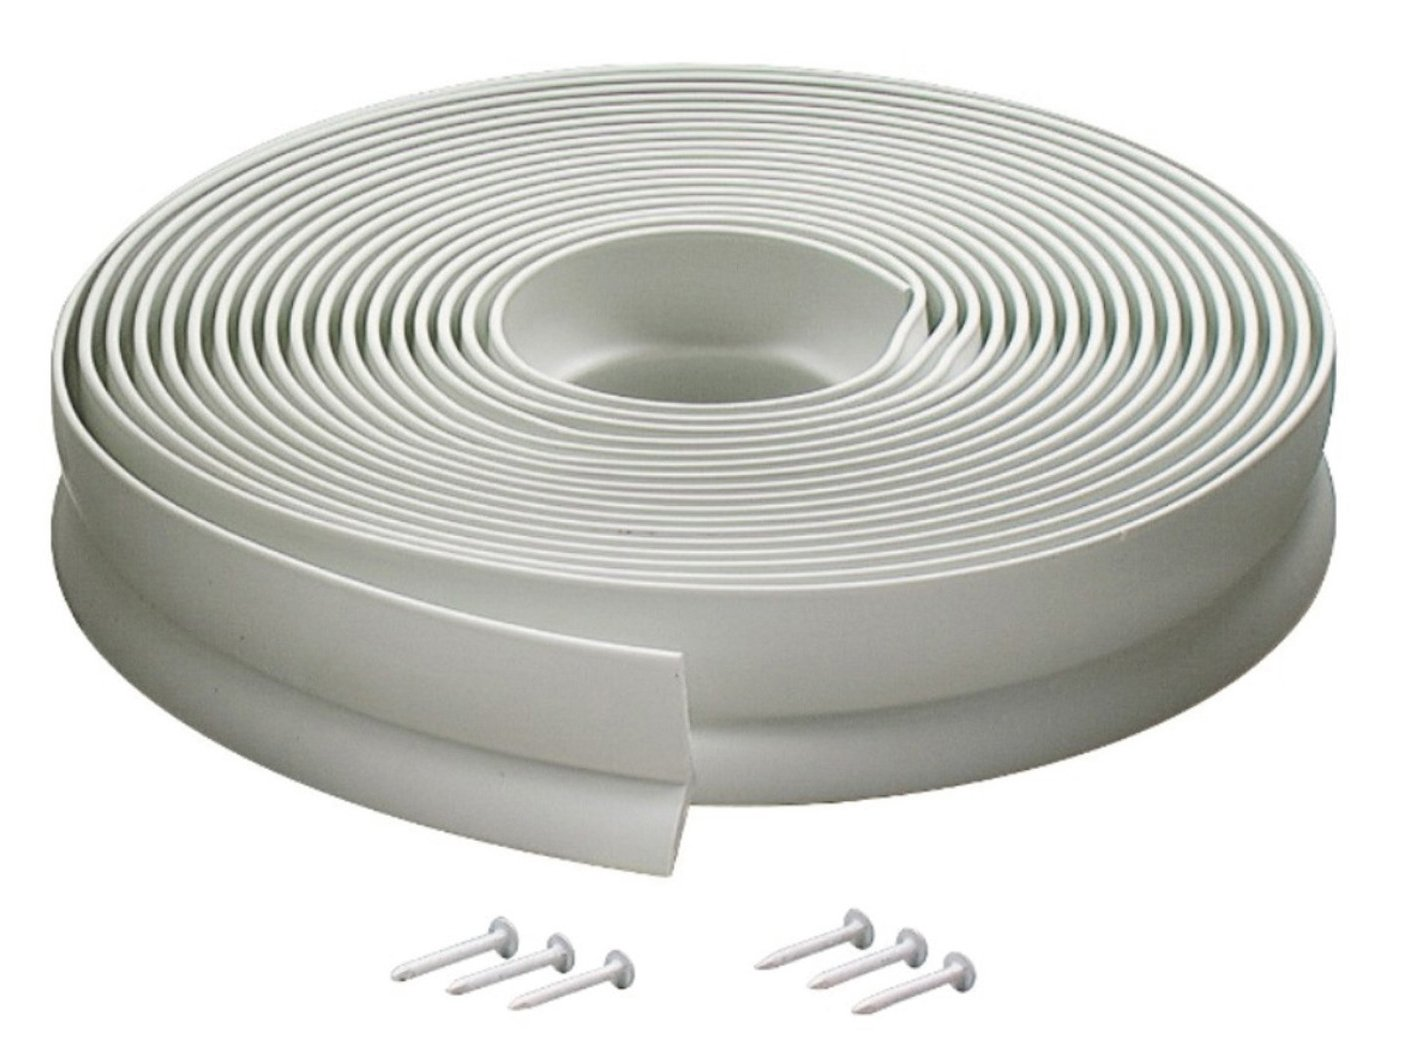 Amazon.com M-D Building Products 3822 Vinyl Garage Door Top and Sides Seal 30 Feet White Home Improvement  sc 1 st  Amazon.com & Amazon.com: M-D Building Products 3822 Vinyl Garage Door Top and ...